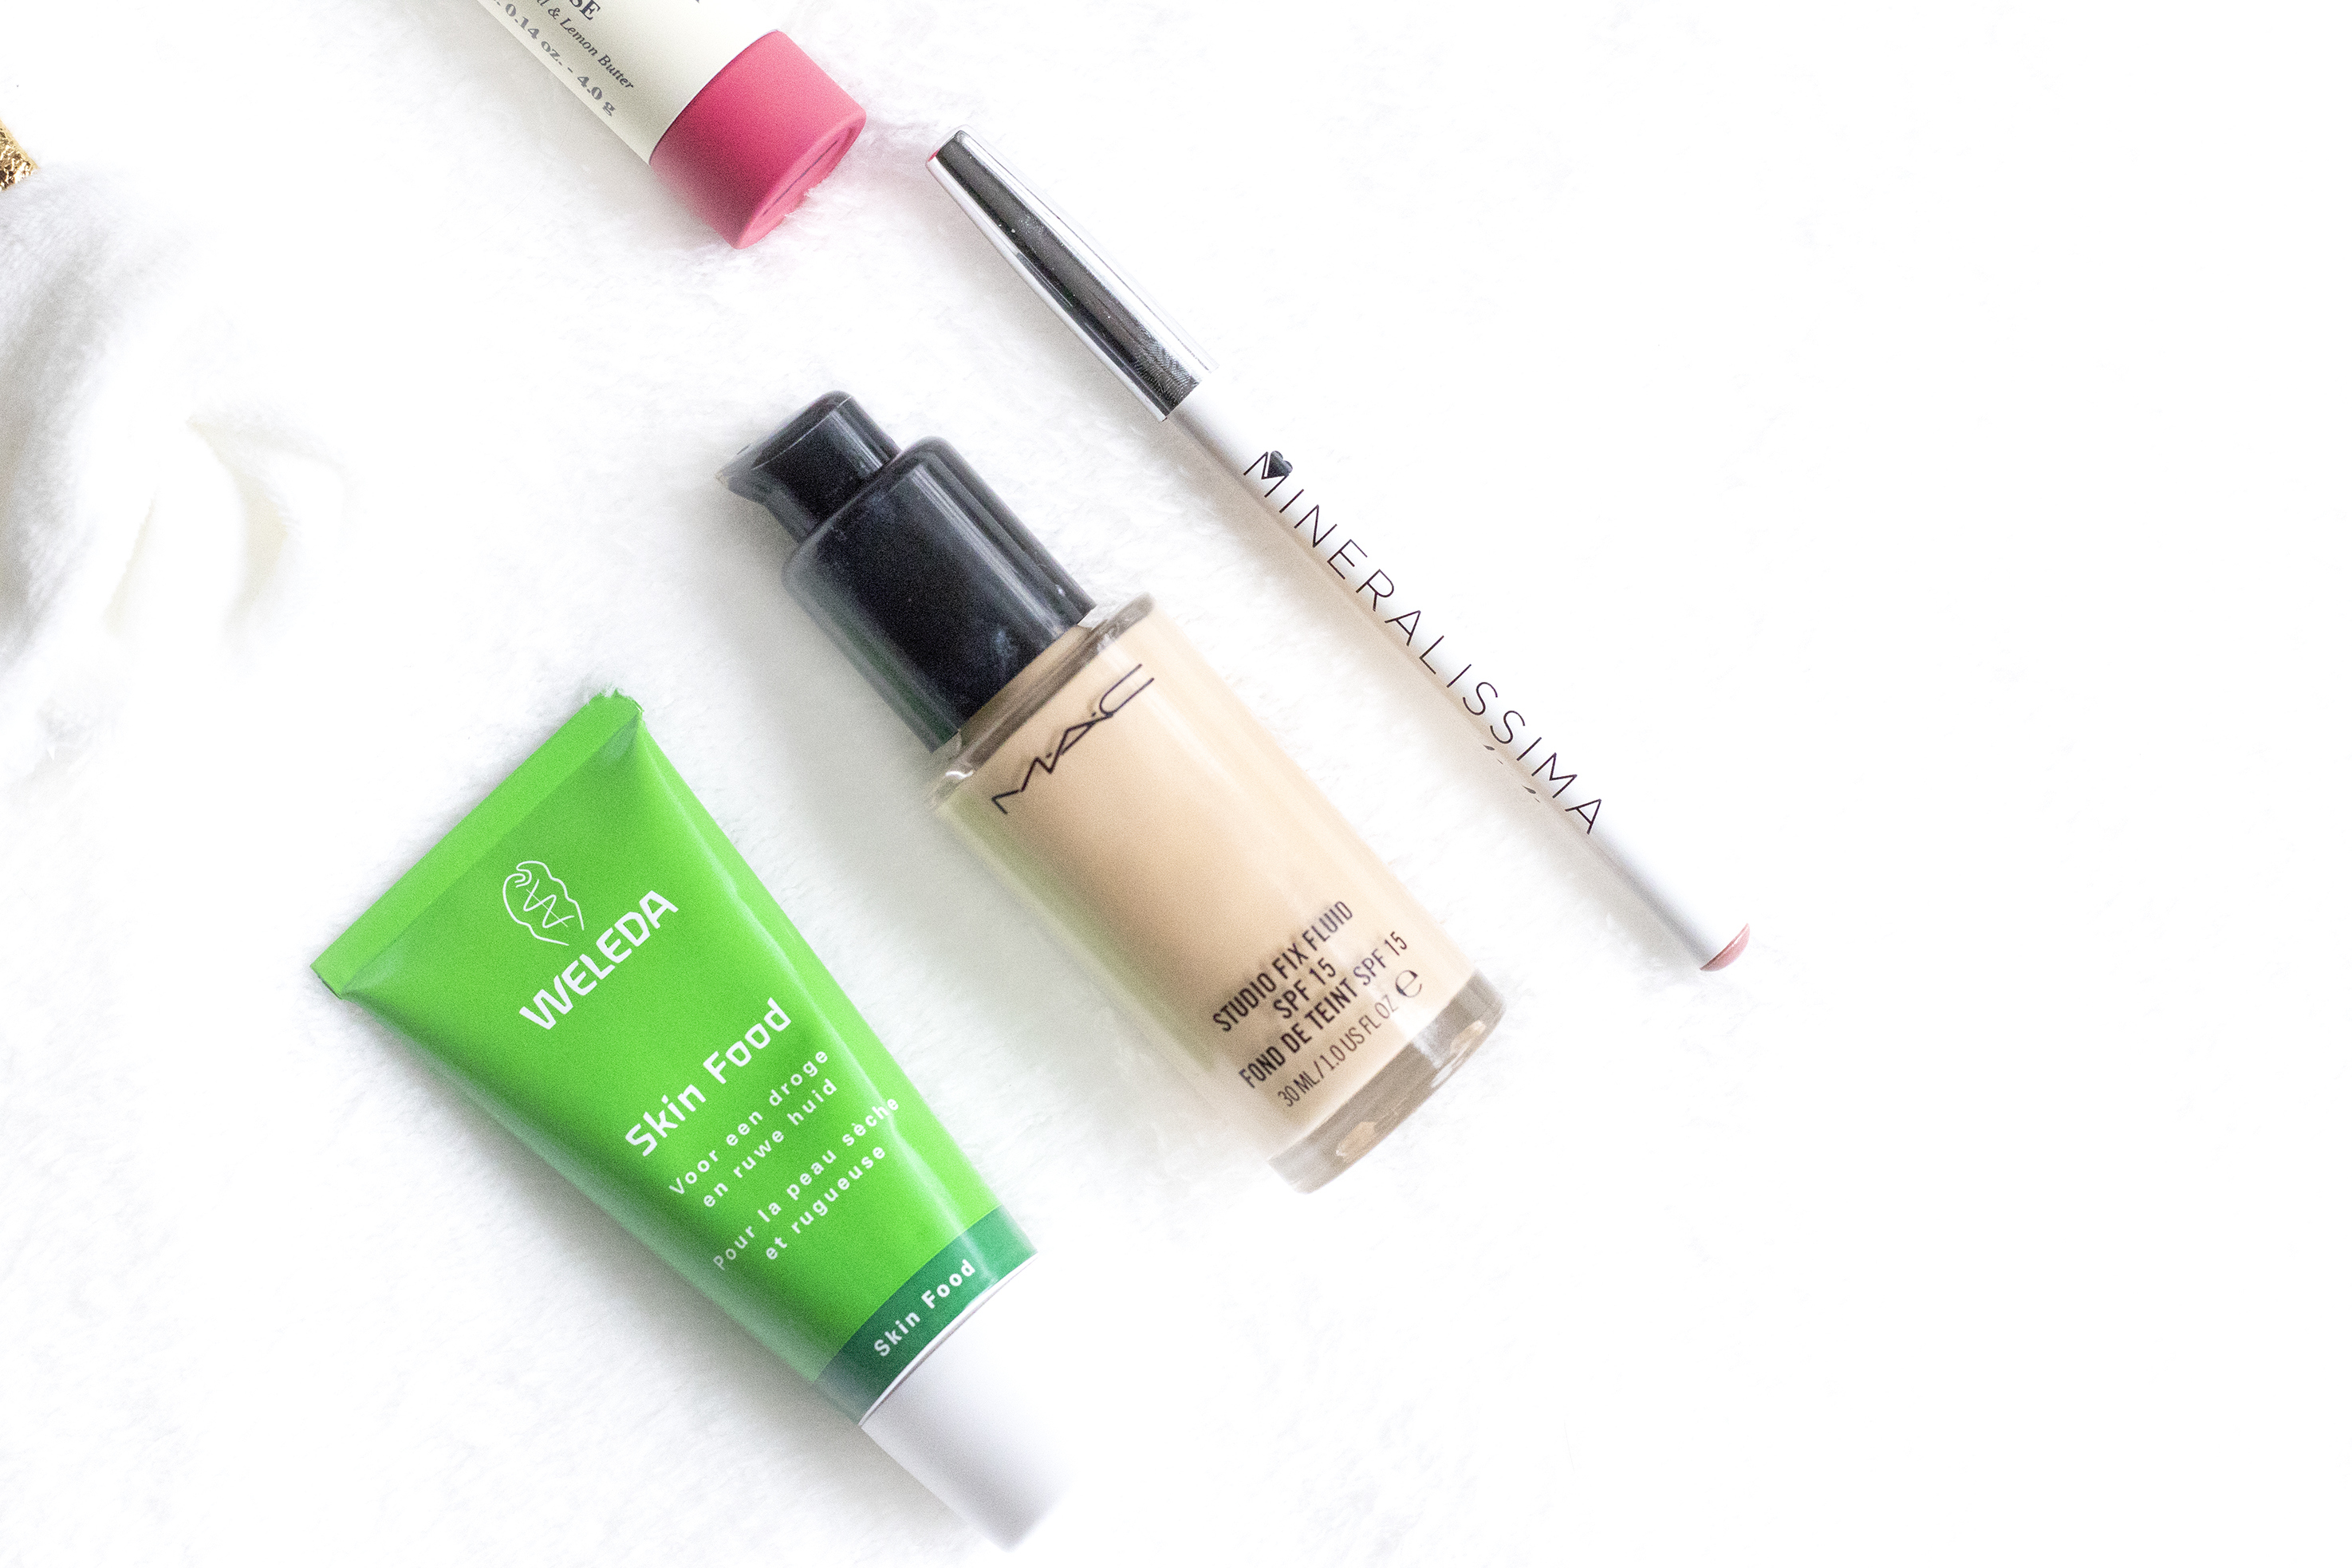 favoriete make-up producten september 2018